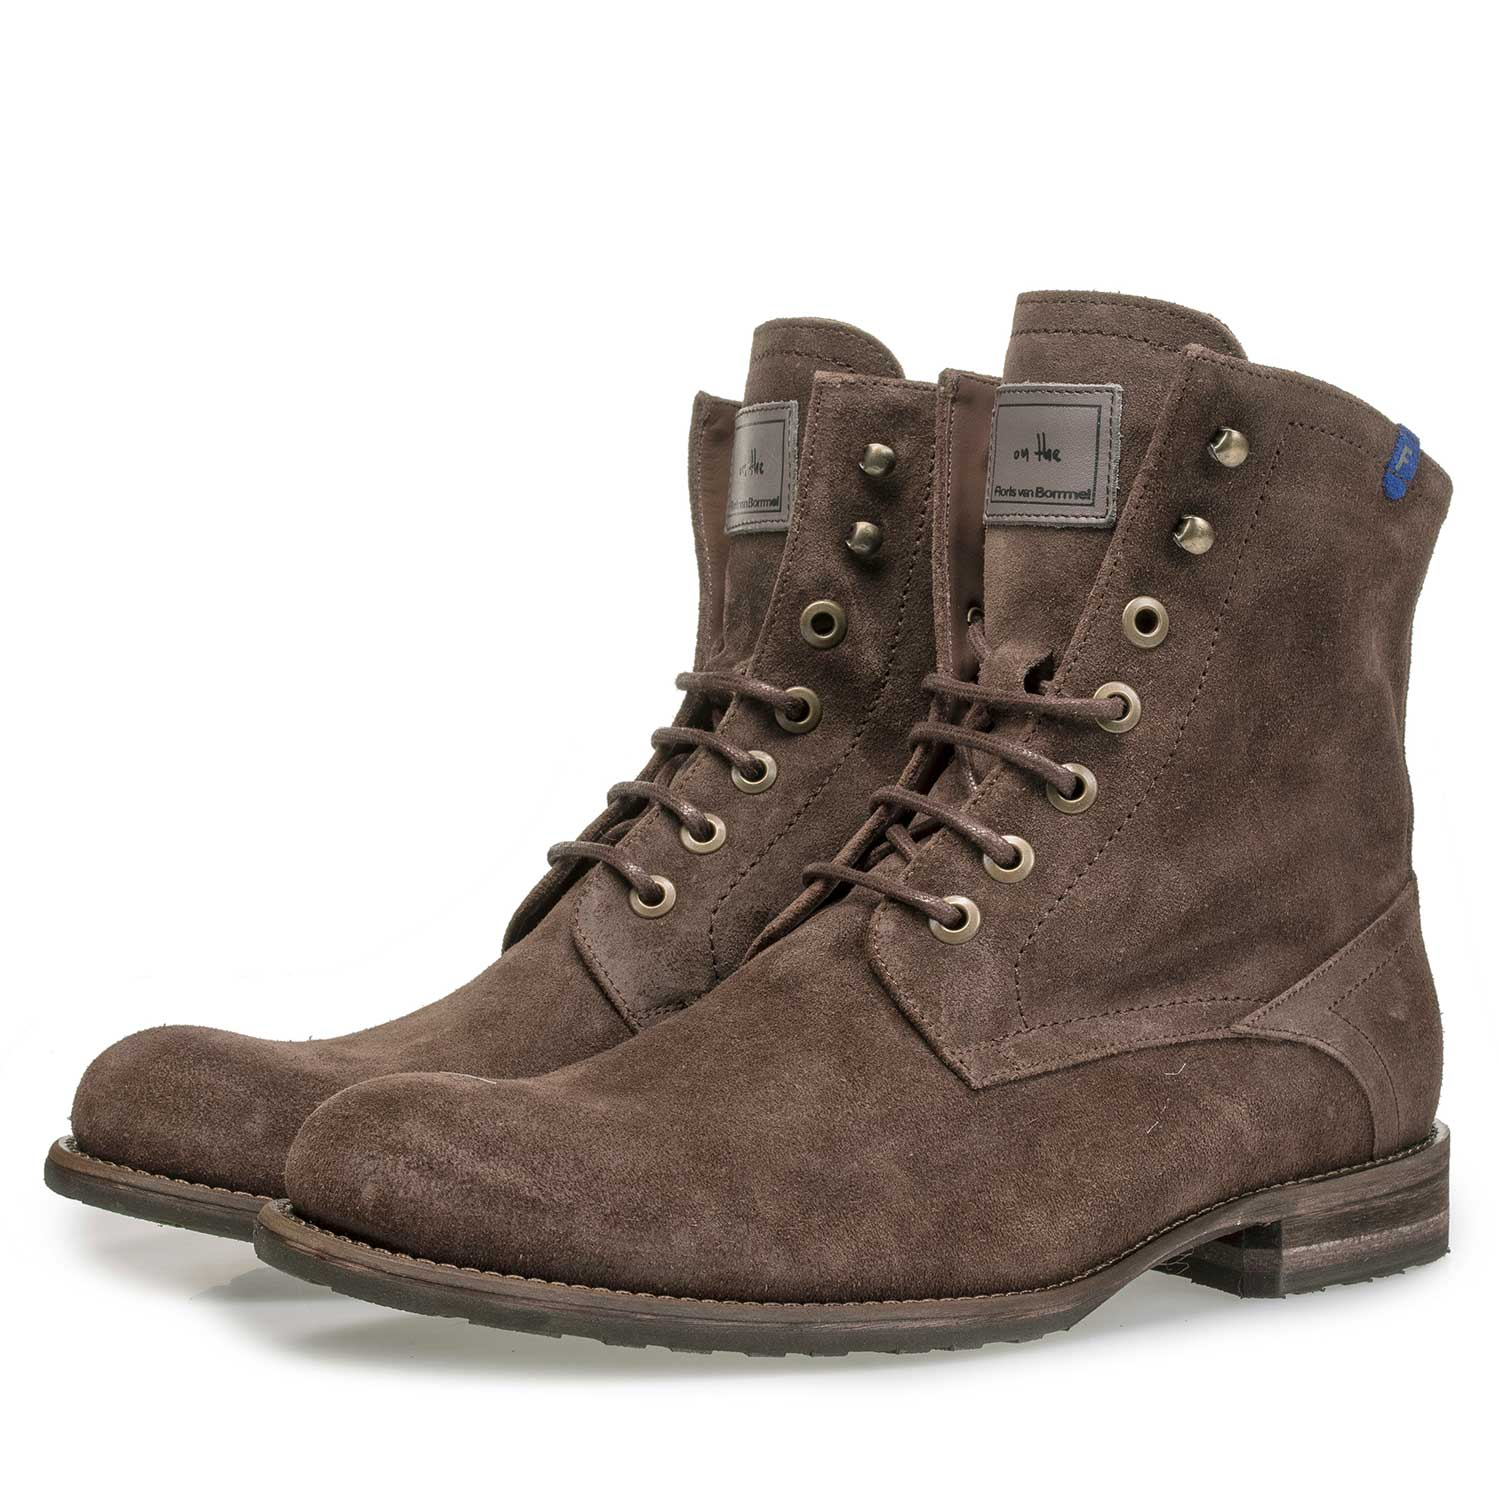 10751/13 - Dark brown suede leather lace boot